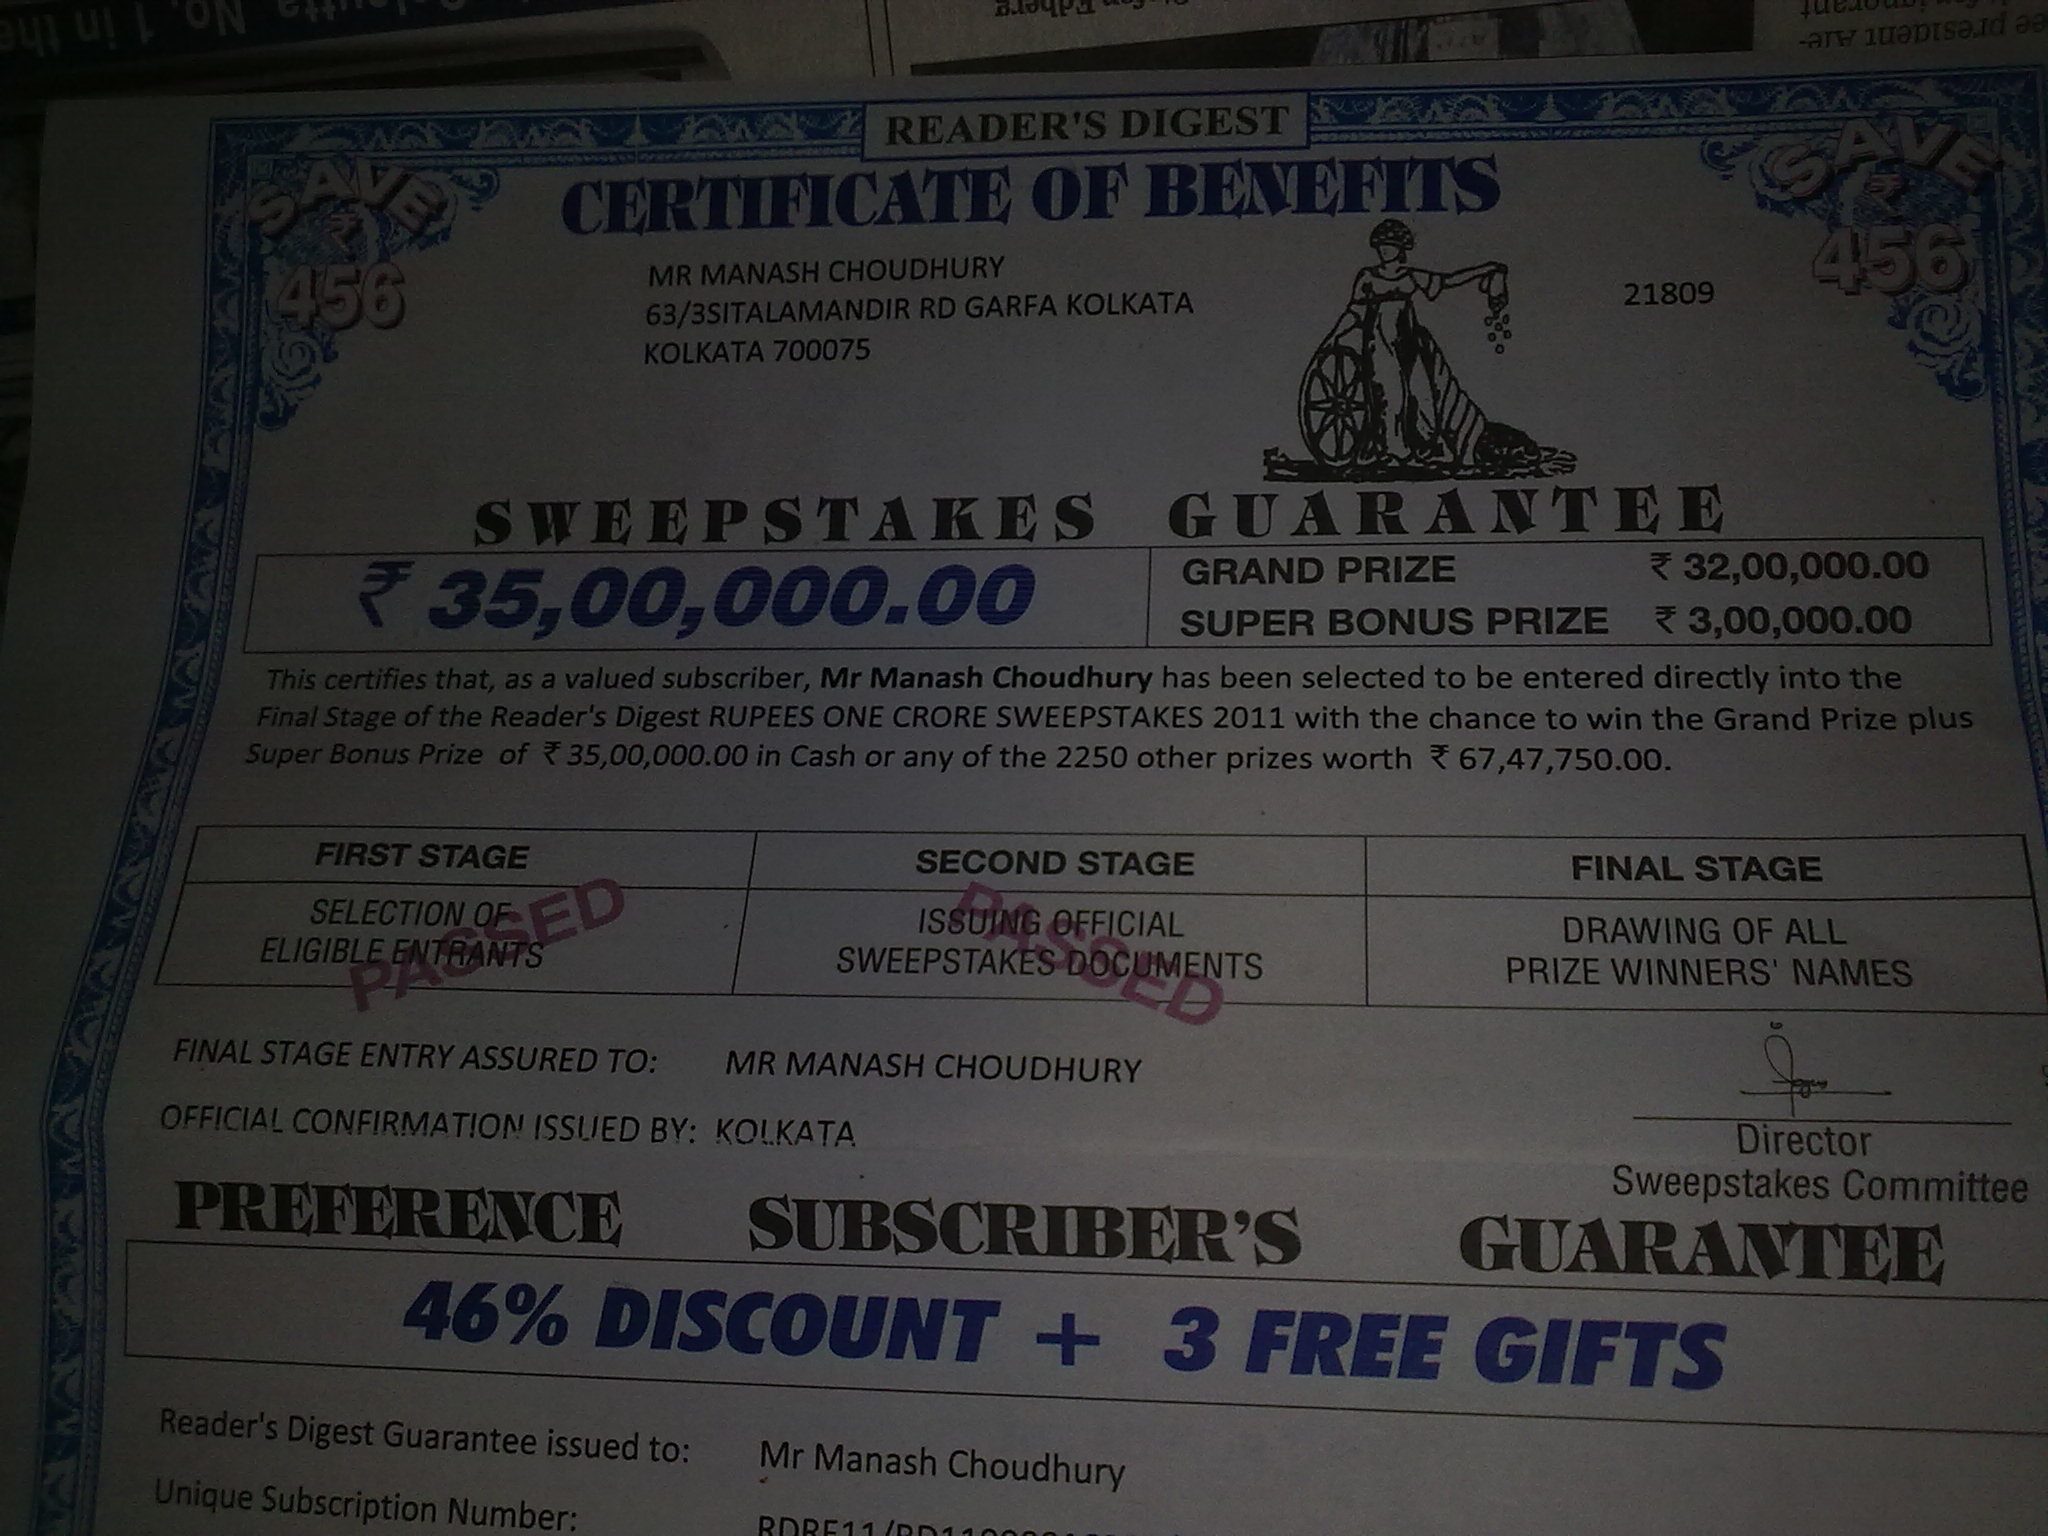 reader s digest is cheating public by fake prize information for all